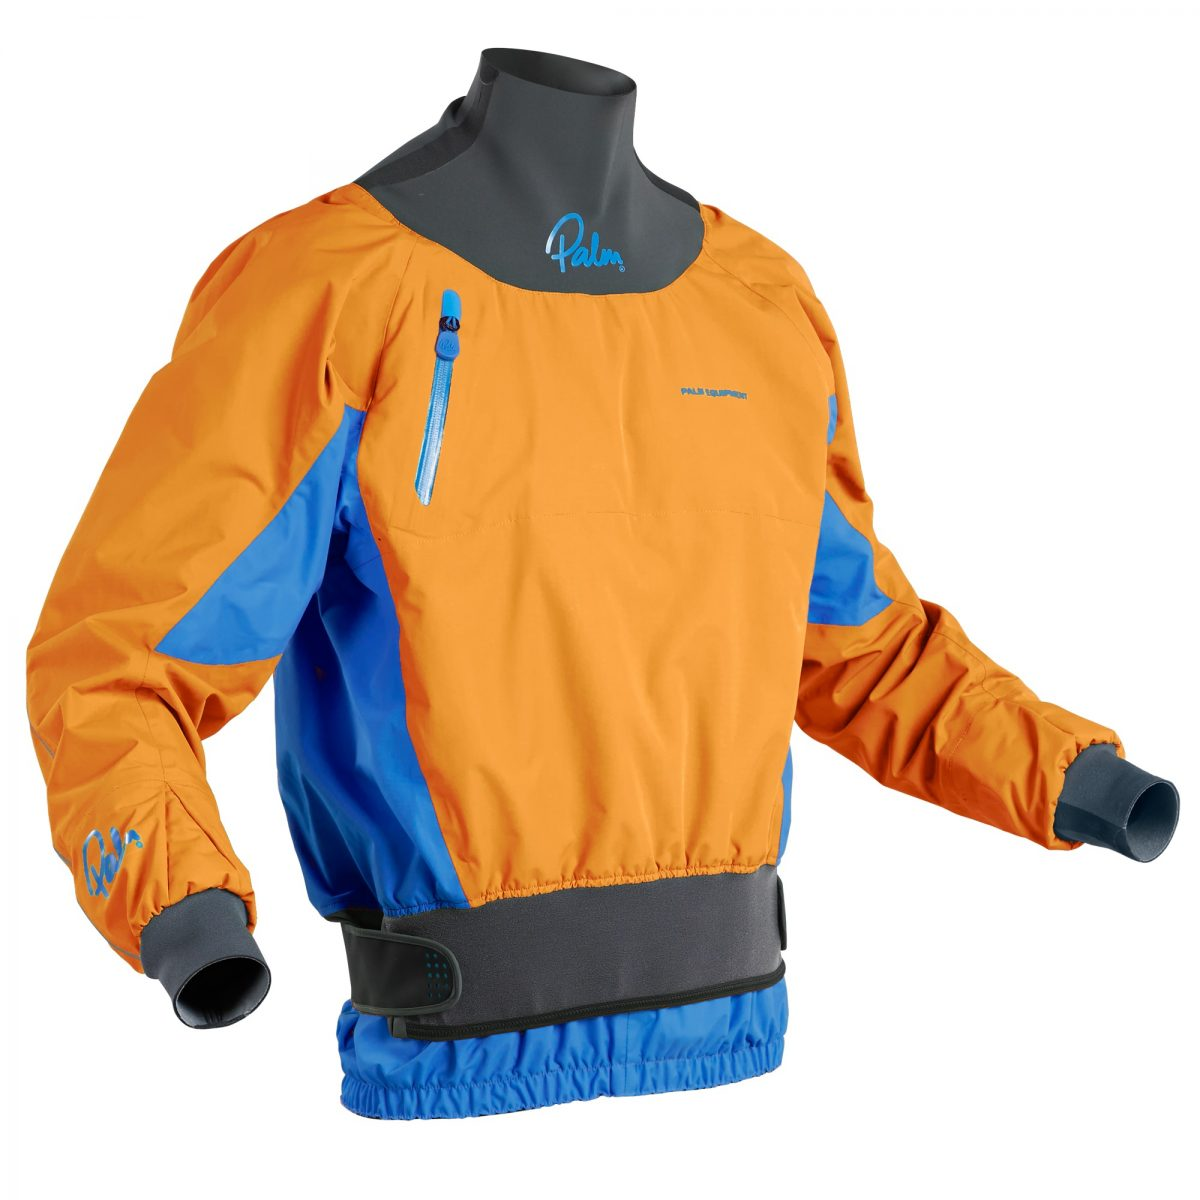 # 3 – Review: Palm Zenith Jackets